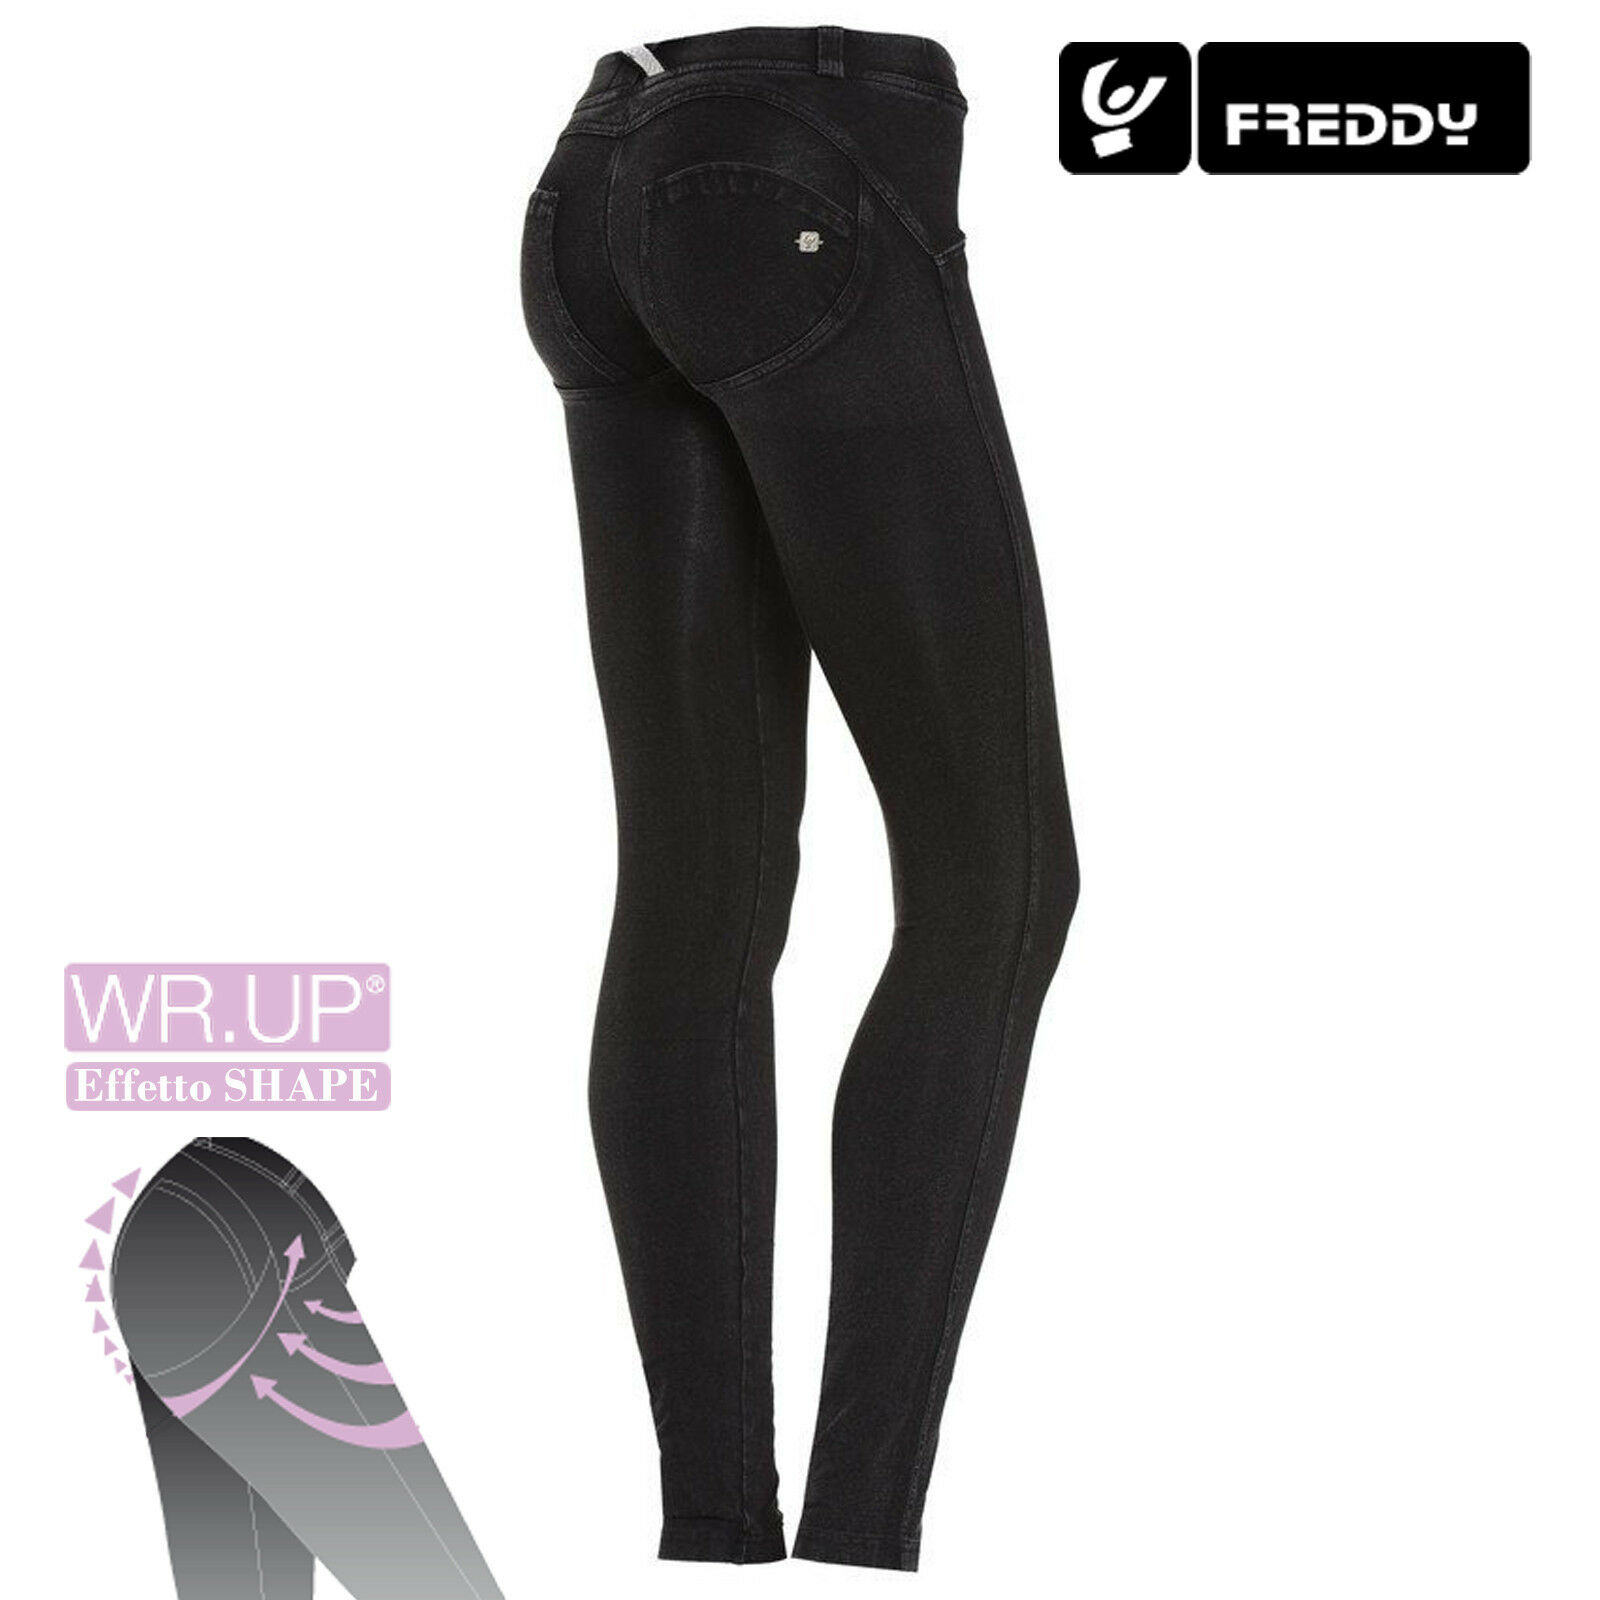 Freddy WR.UP Jeans women Skinny Fit WRUP1LJ1E J7 N COL. black CUCITURE NERE NEW